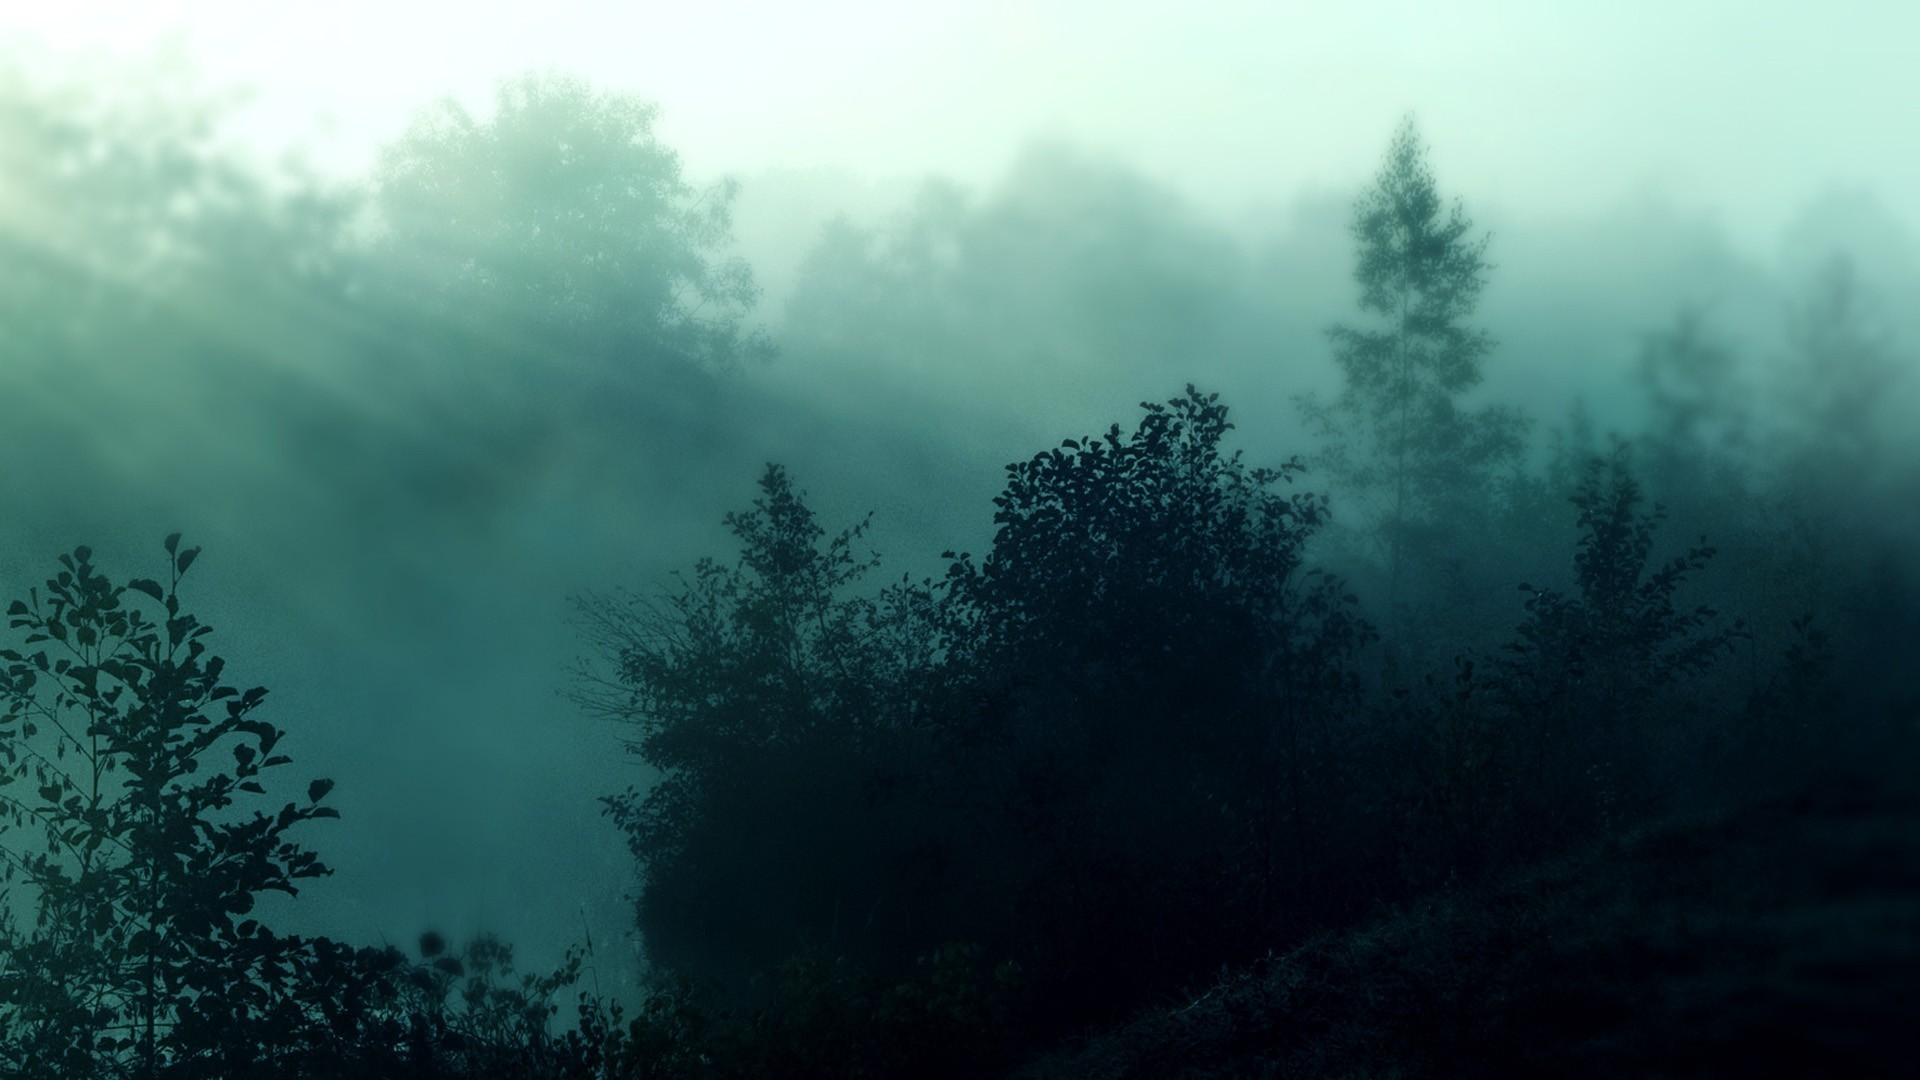 Res: 1920x1080, Foggy forest nature hd wallpapers.